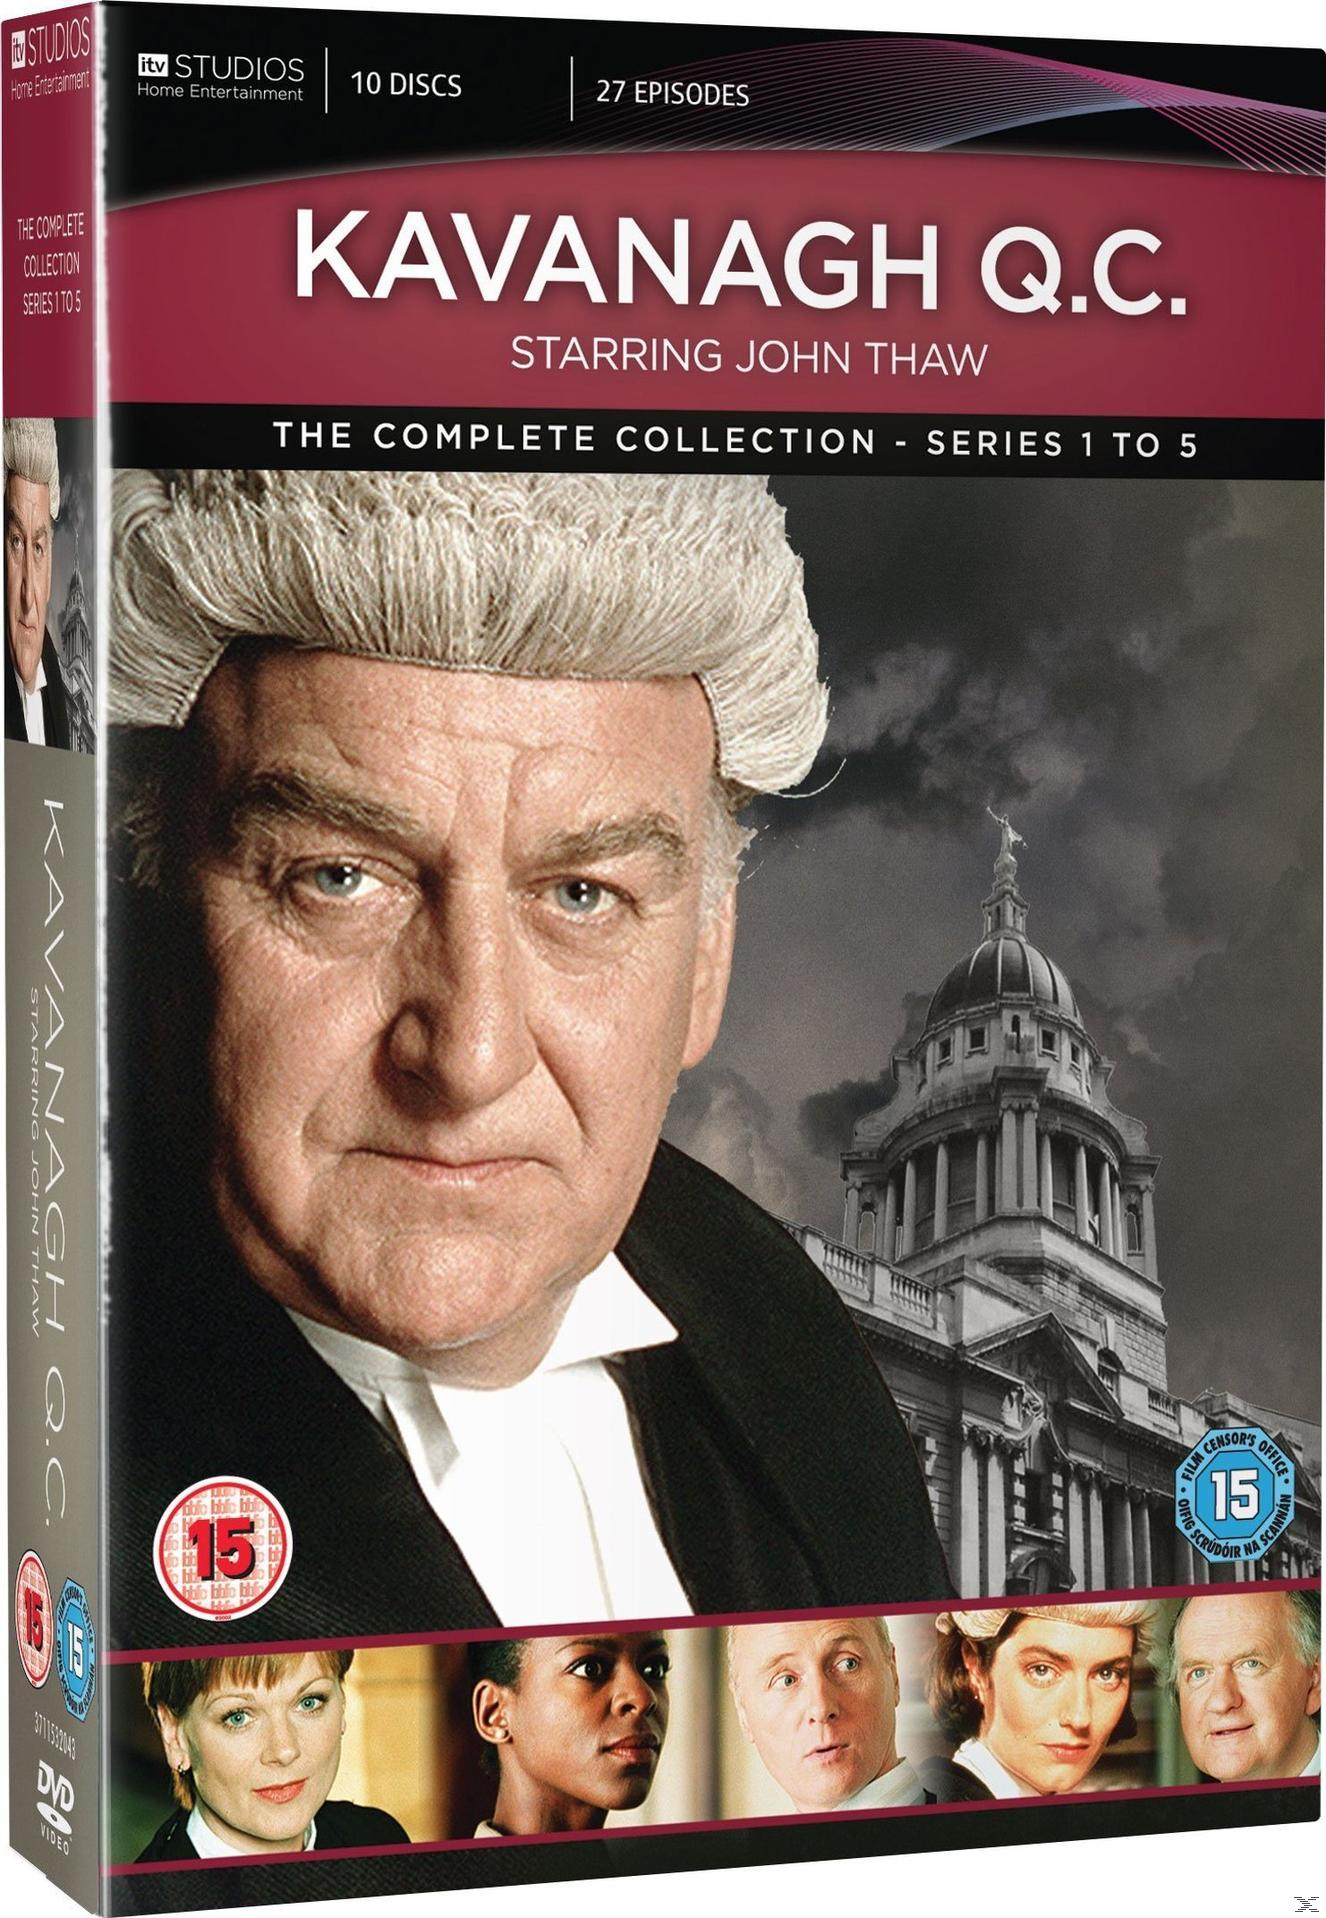 Kavanagh Q.C. - The Complete Collection DVD-Box